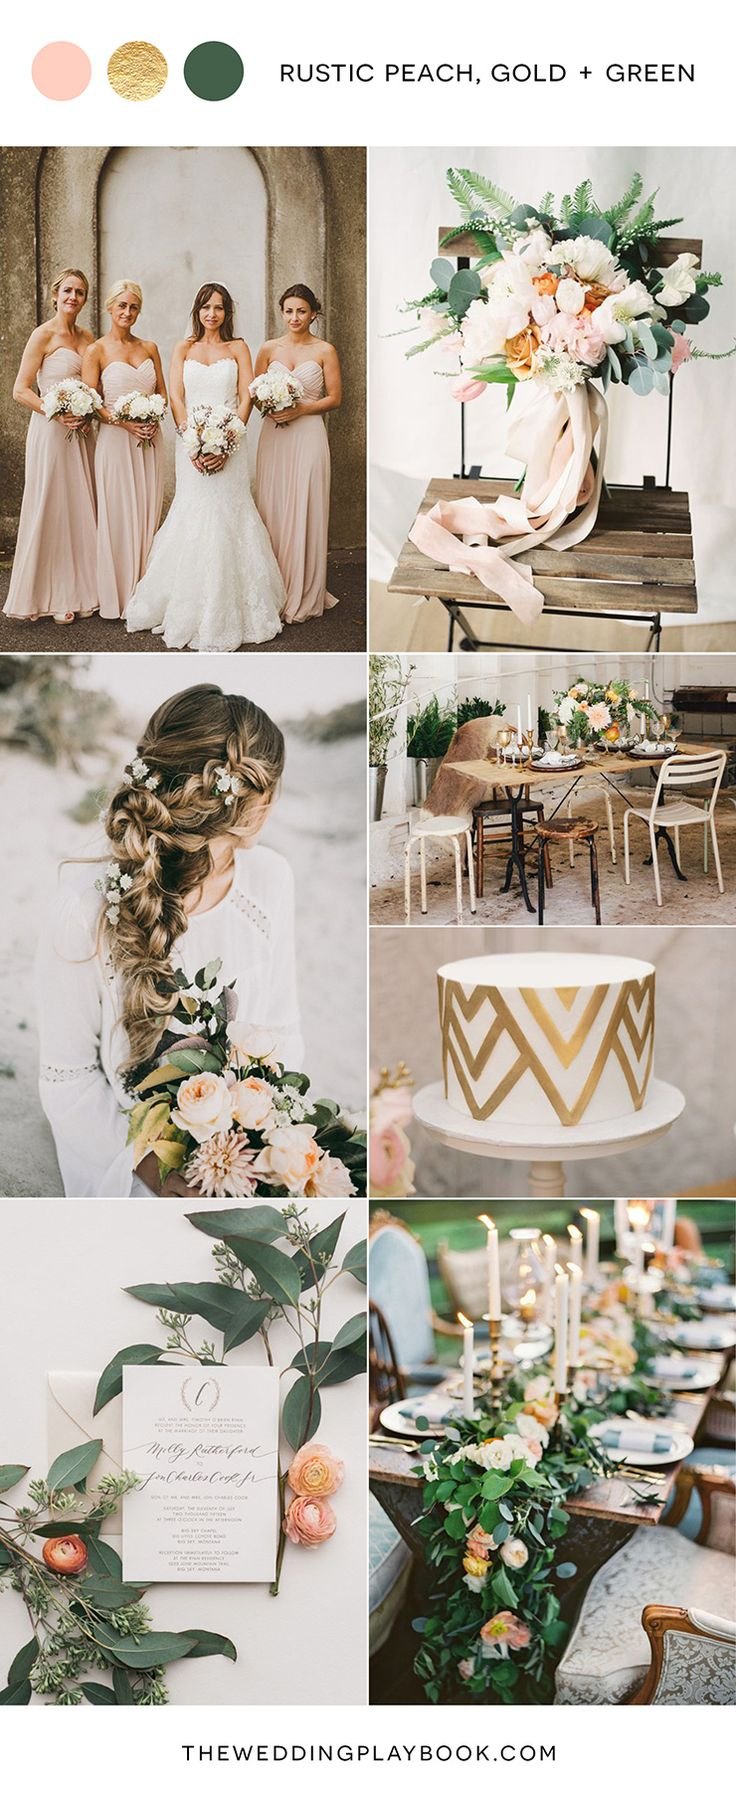 Rustic Peach, Gold and Green Wedding Inspiration via @weddingplaybook